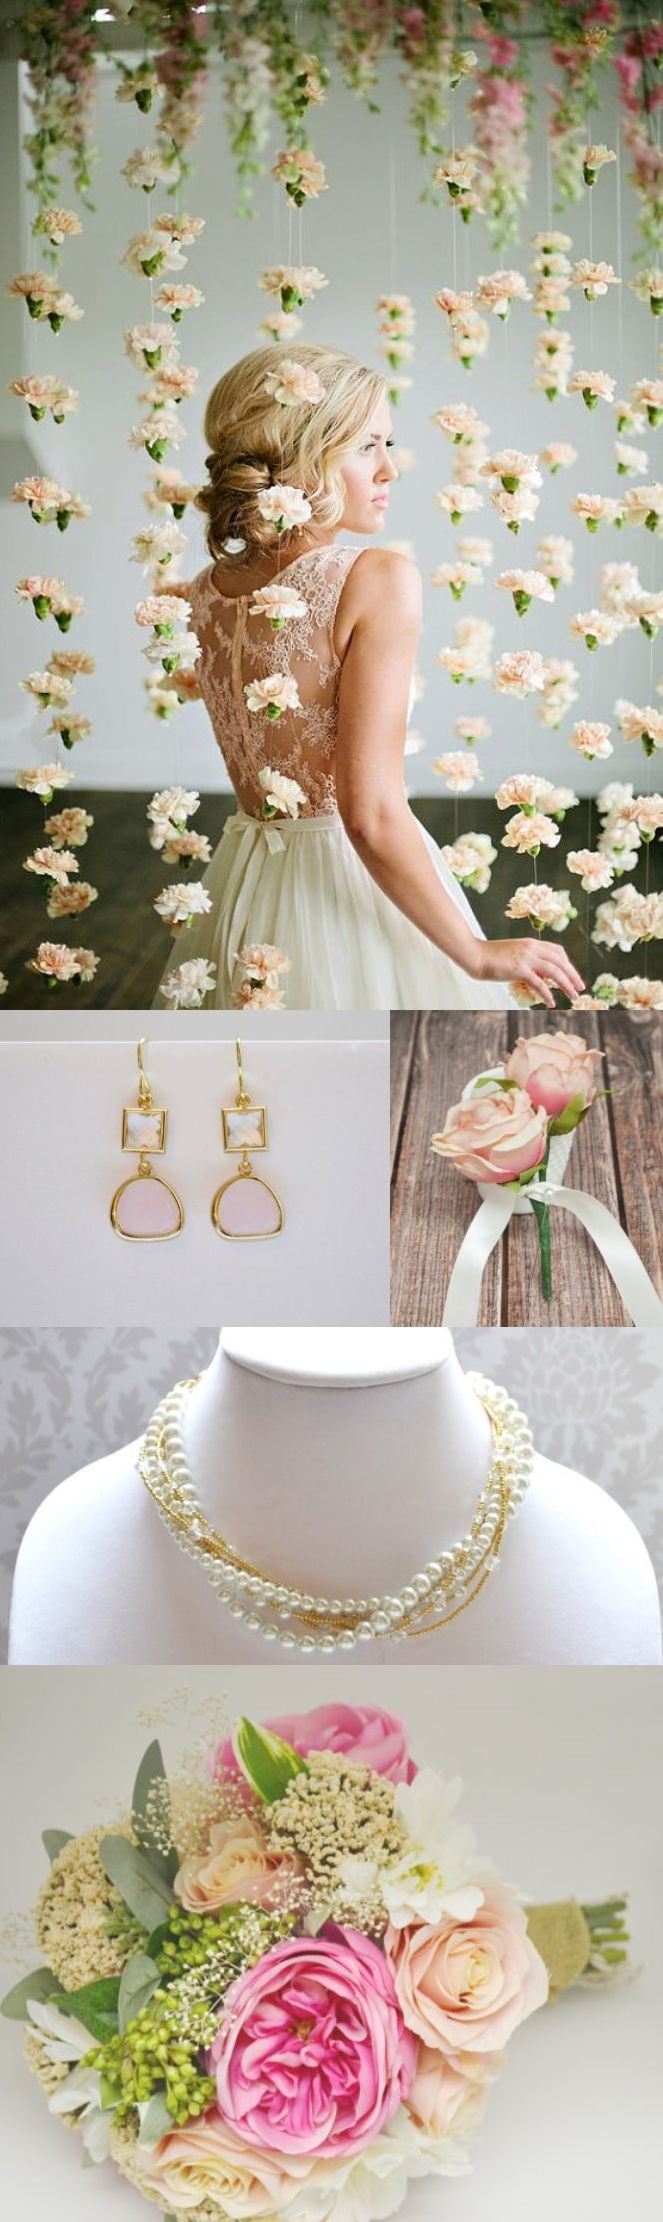 Shabby Chic Wedding, flower garland, pearls, roses, pink, gold, roses, bouquet. Beautiful flowers found at Blue Orchid on Etsy and jewelry by Joy Katharine on Etsy: https://www.etsy.com/listing/205596602/pearl-and-rhinestone-necklace-in-gold?ref=shop_home_active_24&ga_search_query=gold